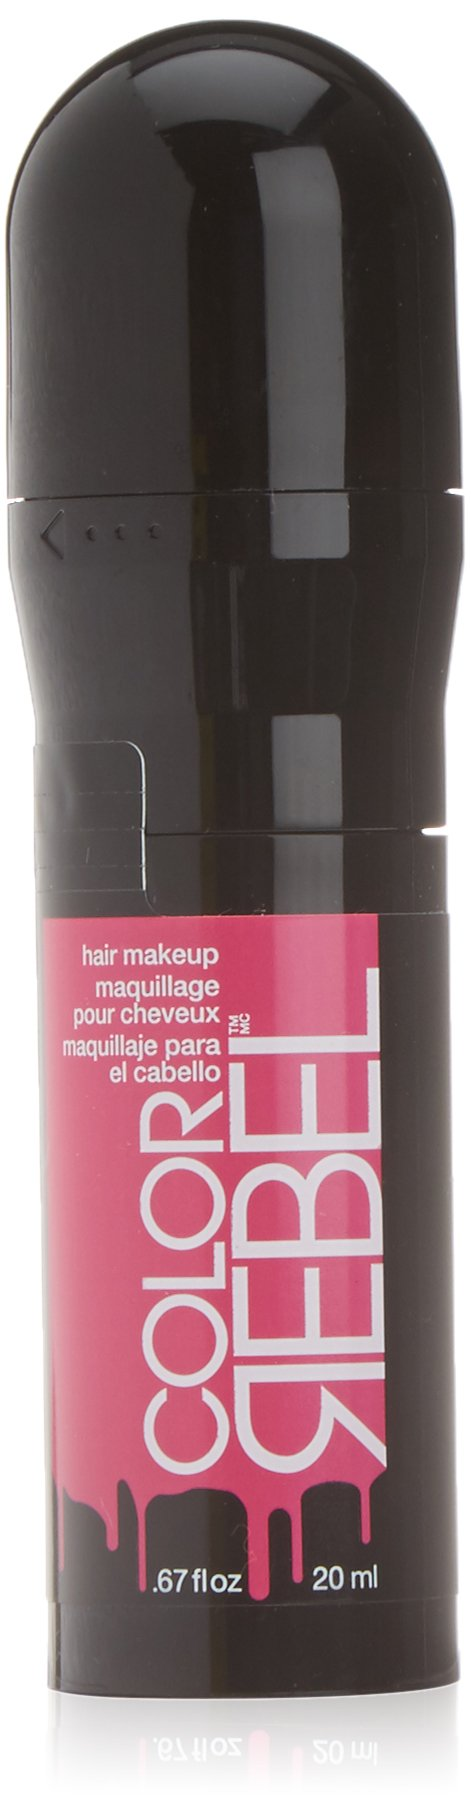 Redken Color Rebel Temporary Hair Makeup - Punked up Pink 0.67 Ounce